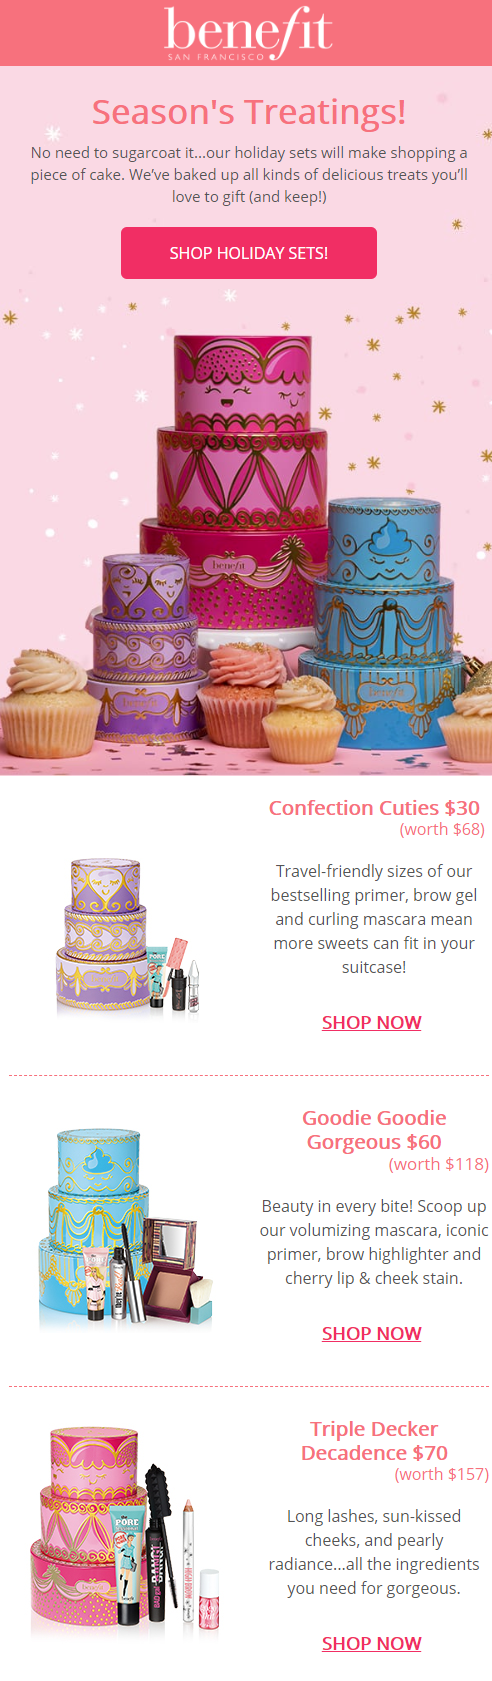 No need to sugarcoat it...Benefit holiday sets will make shopping a piece of cake. They've baked u...